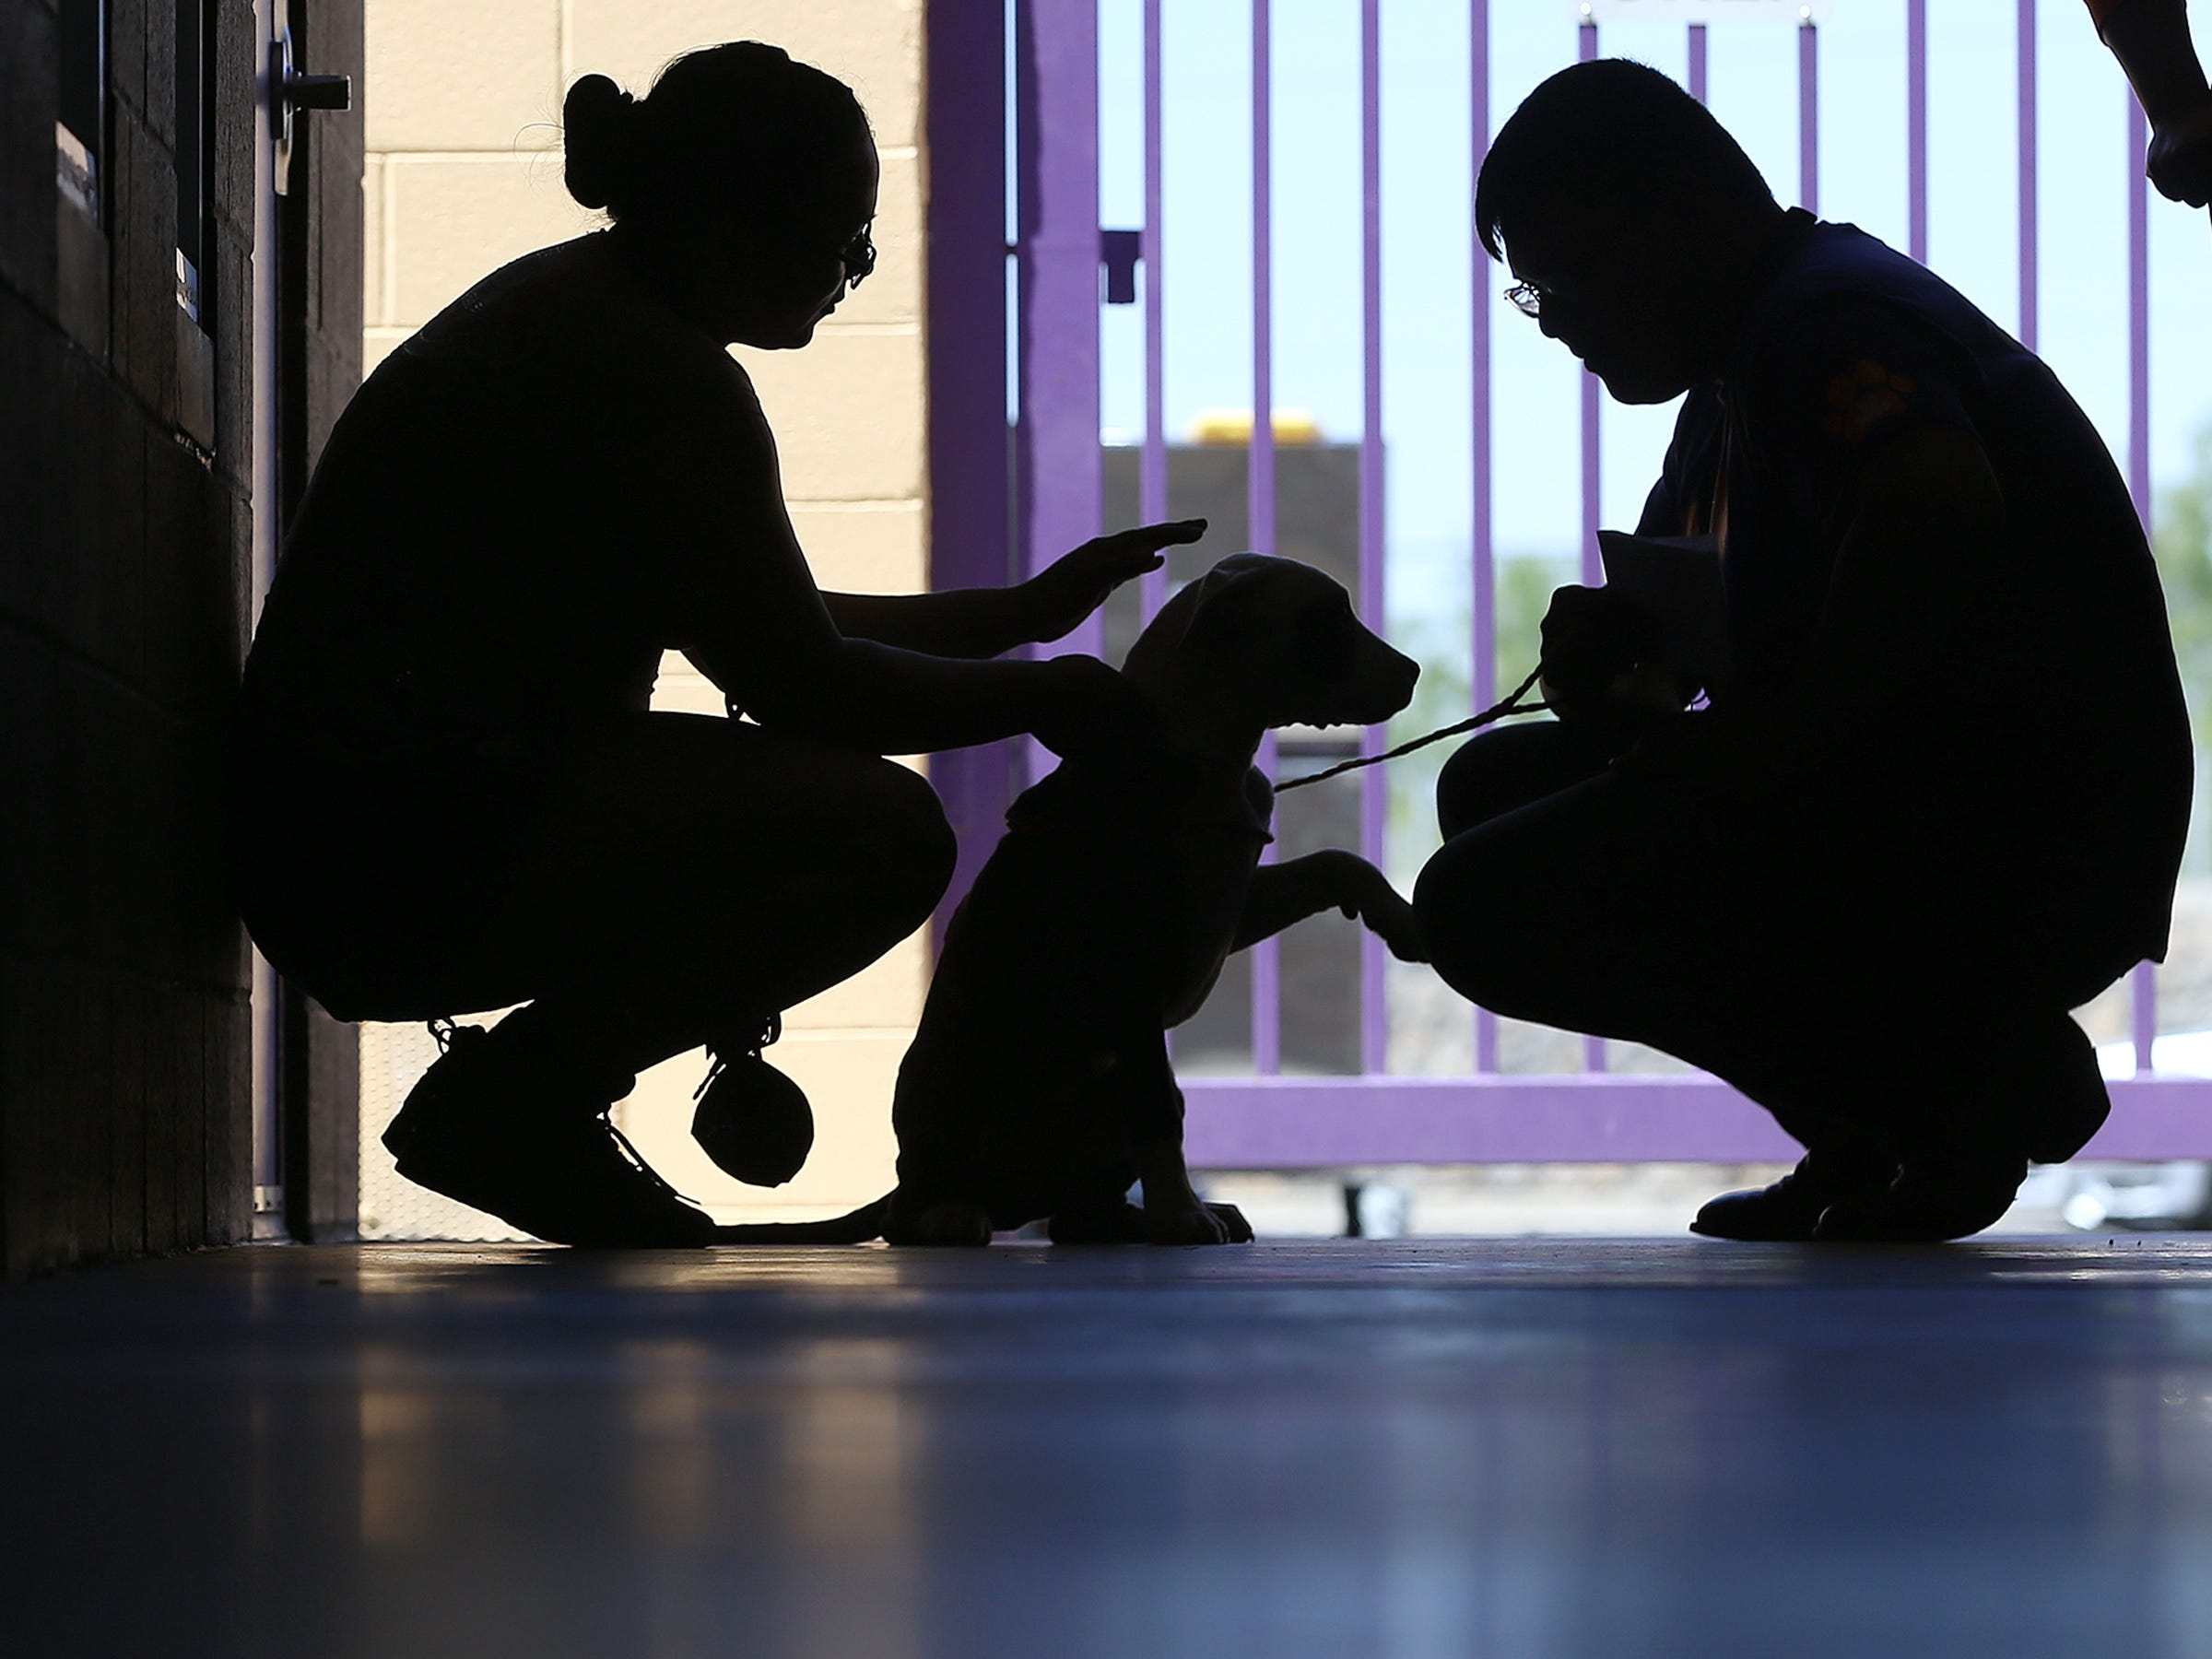 Free pet adoptions in El Paso as part of 'Clear the Shelters' national campaign | El Paso Times